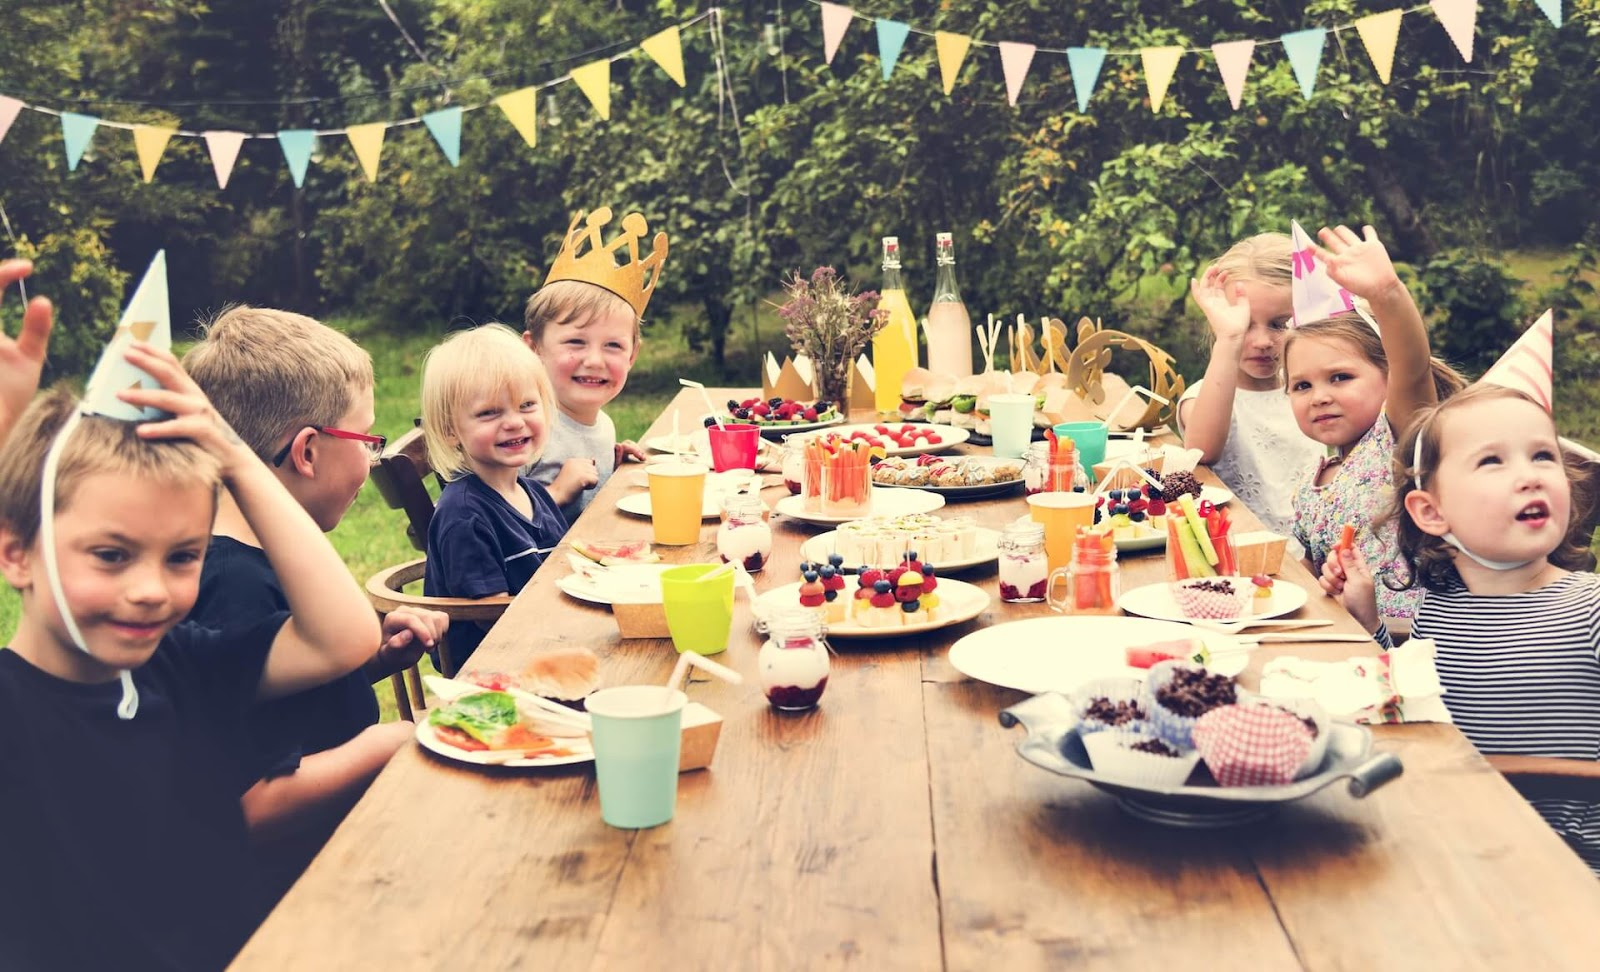 Kids sitting around a table at a backyard birthday